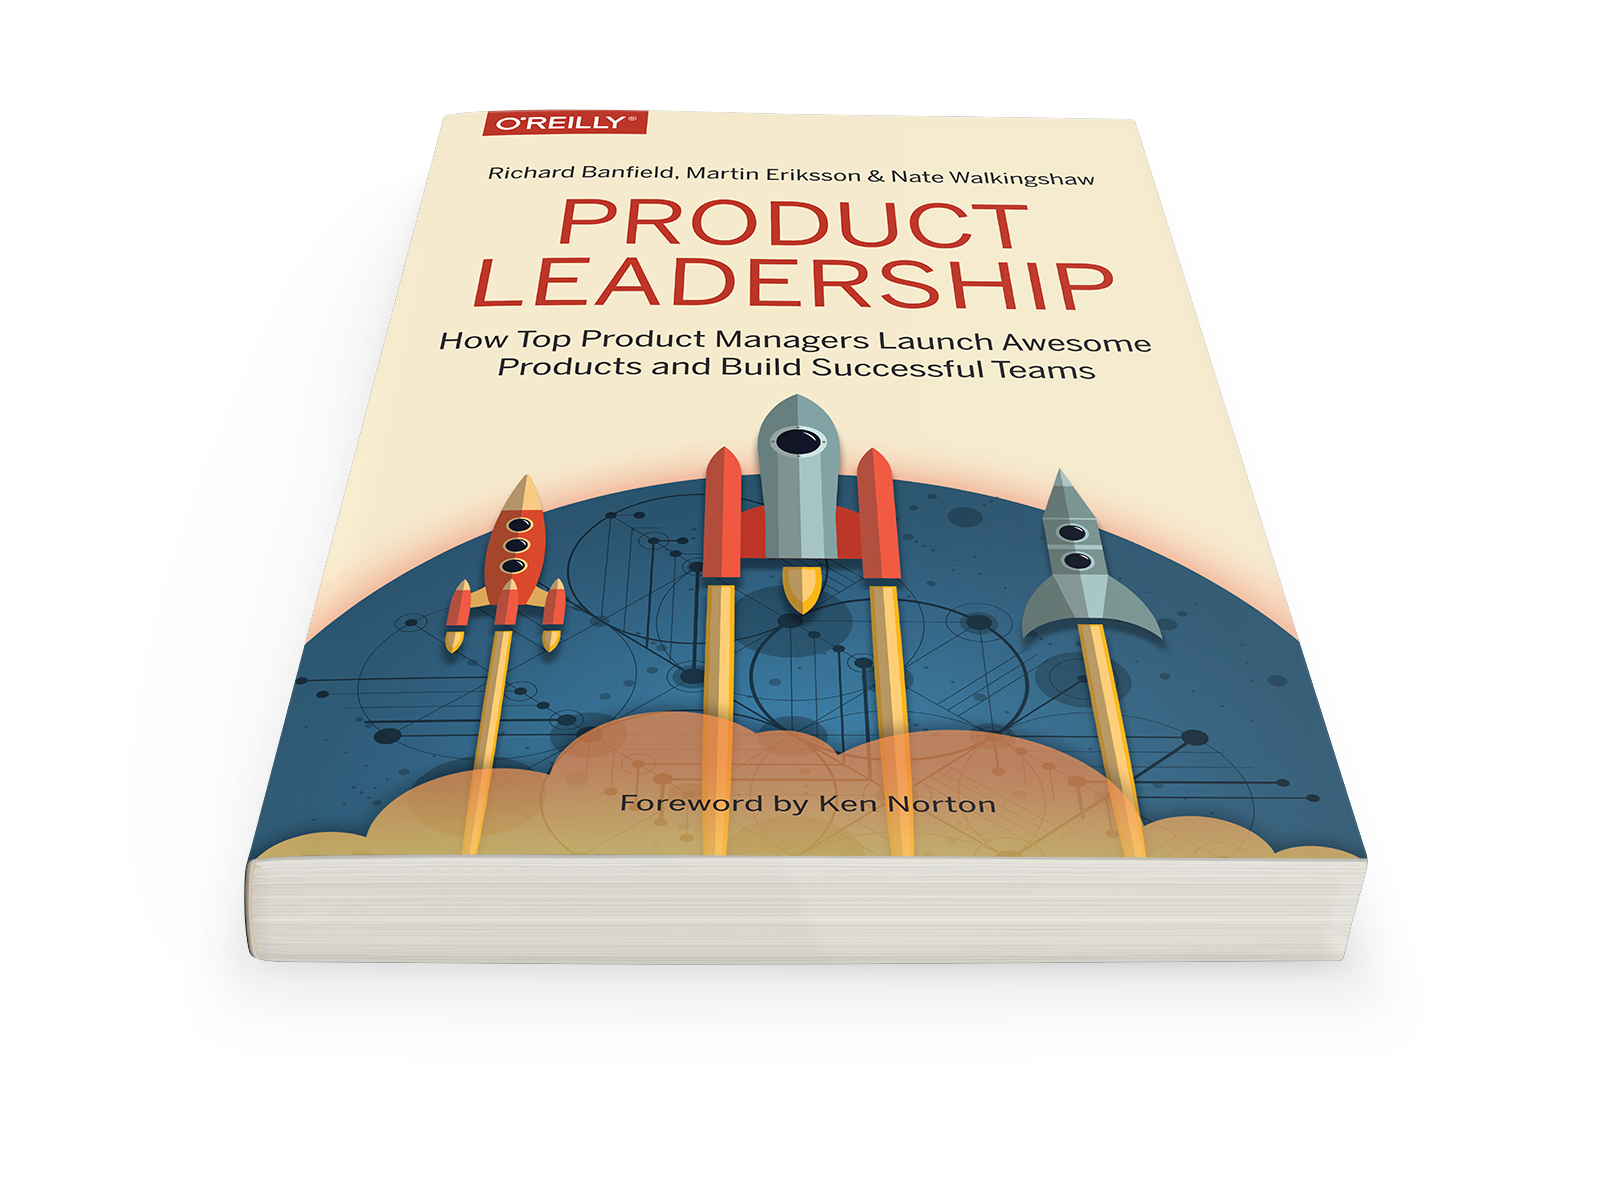 A picture of RIchard Banfield's book titled Product Leadership: How Top Product Managers Launch Awesome Products and Build Successful Teams